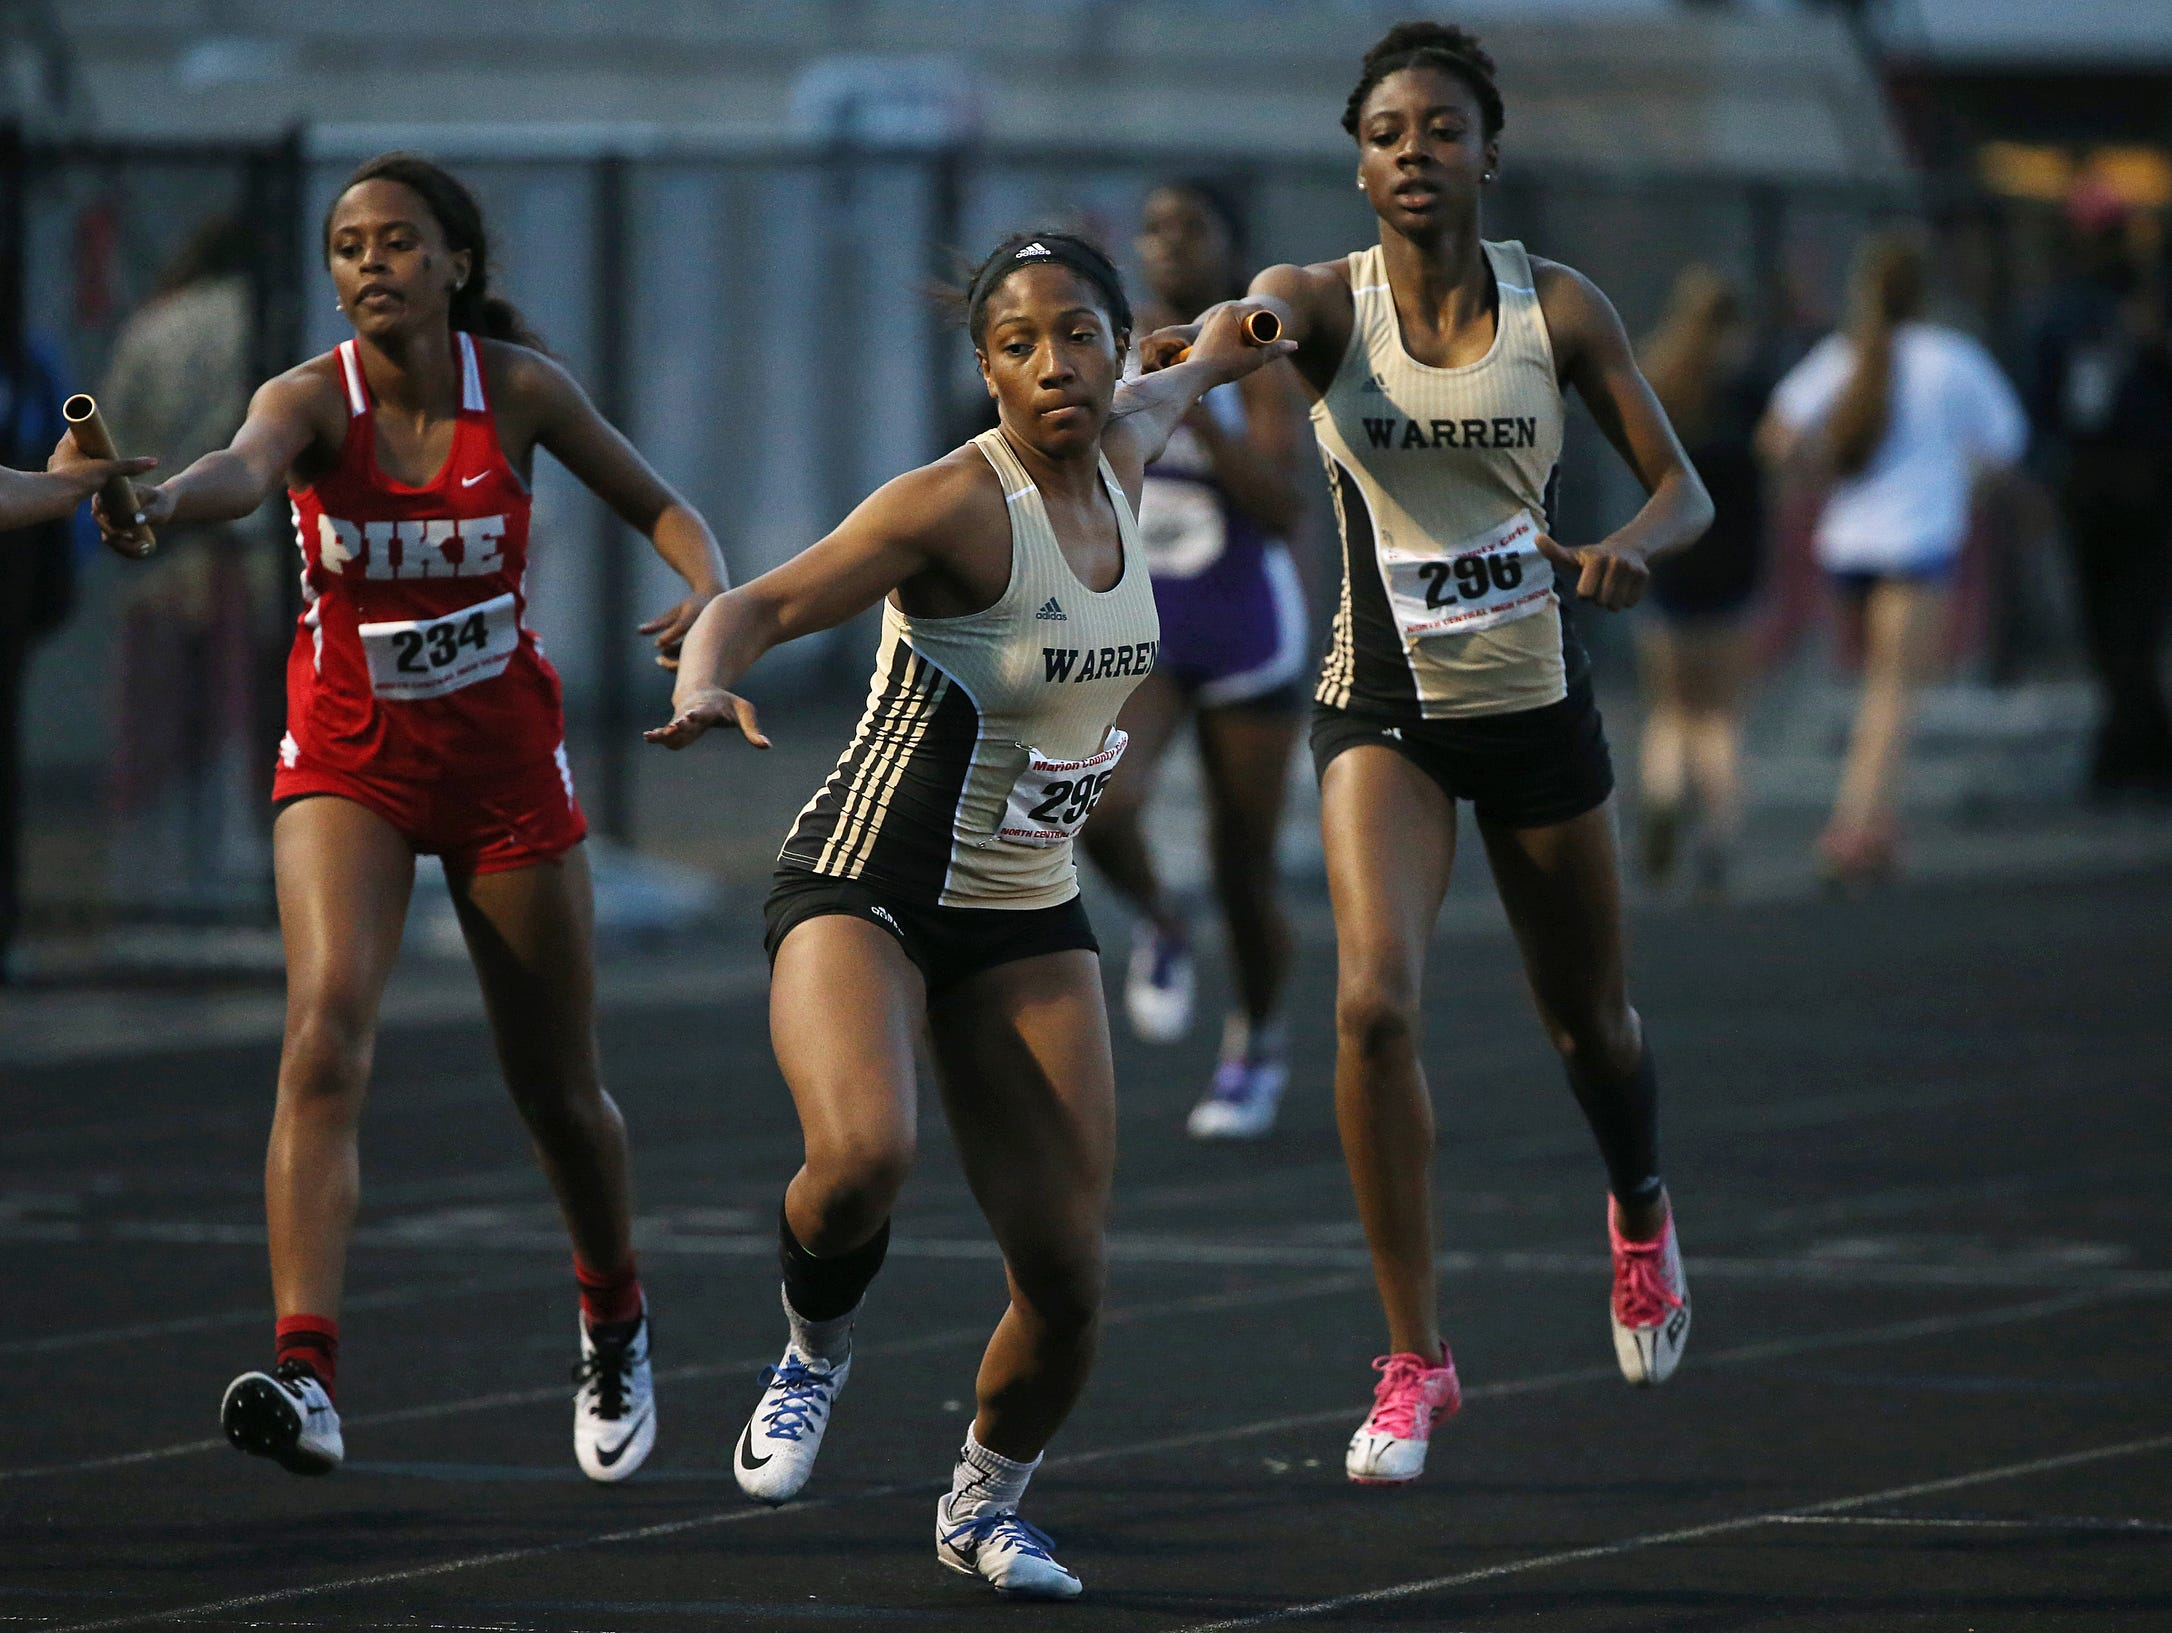 Center, Warren Central junior Ashley Baker takes the relay stick, right, sophomore Kennedy Batts, during a Marion County girls track meet at North Central High School, Tuesday, May 10, 2016. Warren Central won the 4 x 400 meter relay.